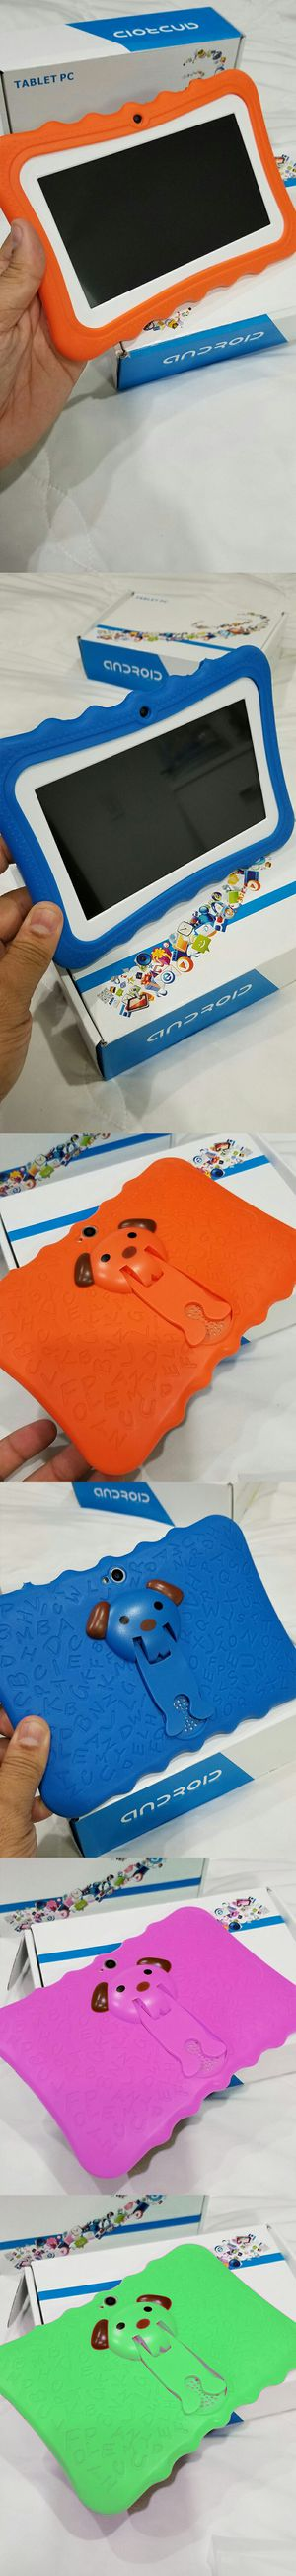 """KIDS LEARNING TABLET 7"""" 8GB ANDROID FULL OF GAMES AND LEARNING APPS WITH CASE BRAND NEW IN BOX - YOUTUBE - GOOGLE PLAYSTORE for Sale in Miami, FL"""